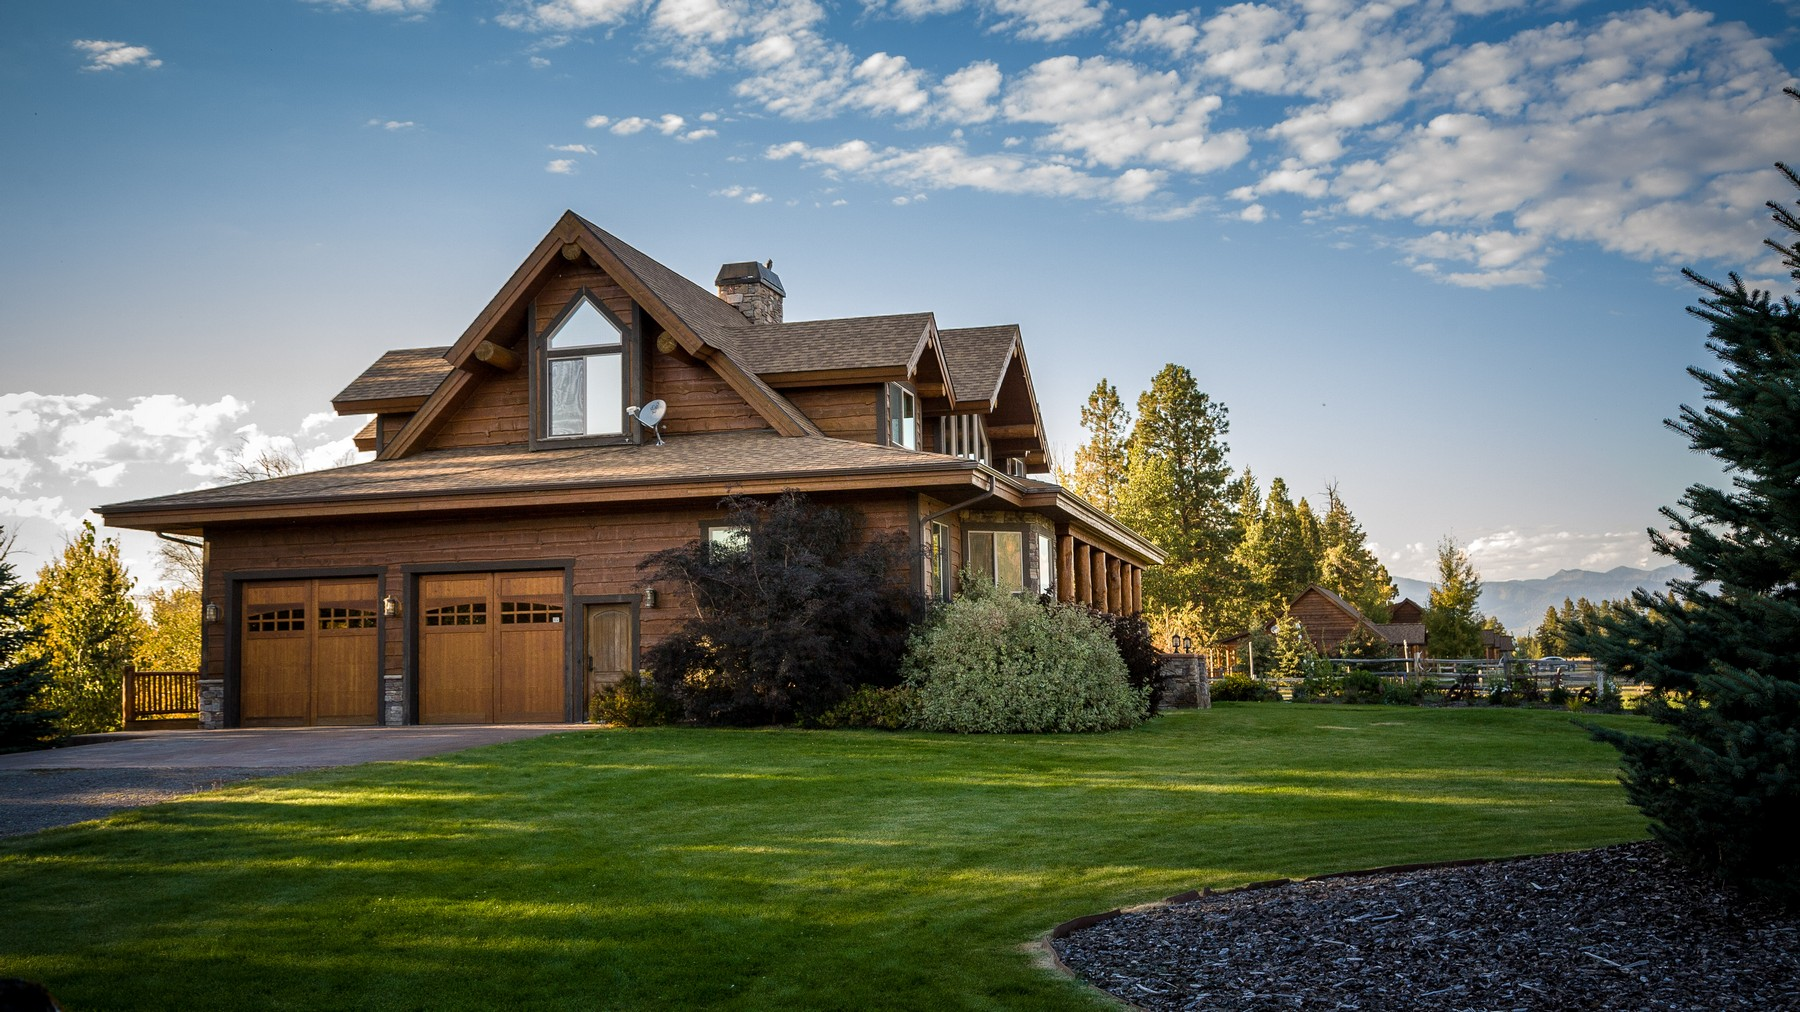 Additional photo for property listing at 62 Gentry Way , Columbia Falls, MT 59912 62  Gentry Way Columbia Falls, Montana 59912 United States